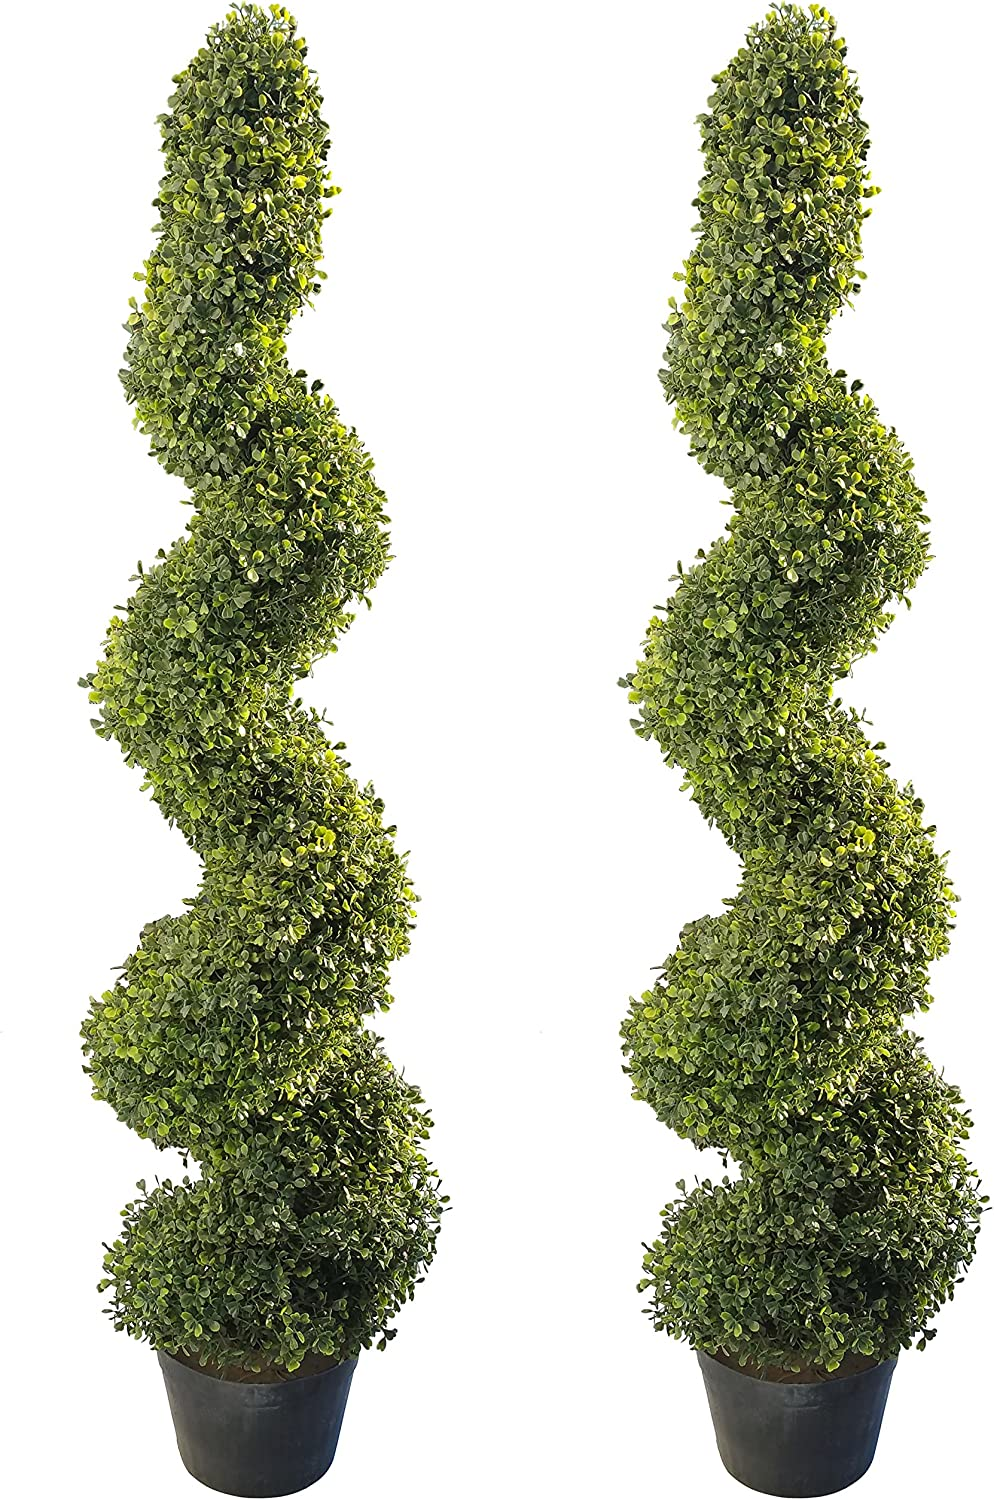 4'Artificial Topiary Spiral Boxwood Mail order cheap Trees by Northwoo Set of Cheap mail order sales 2